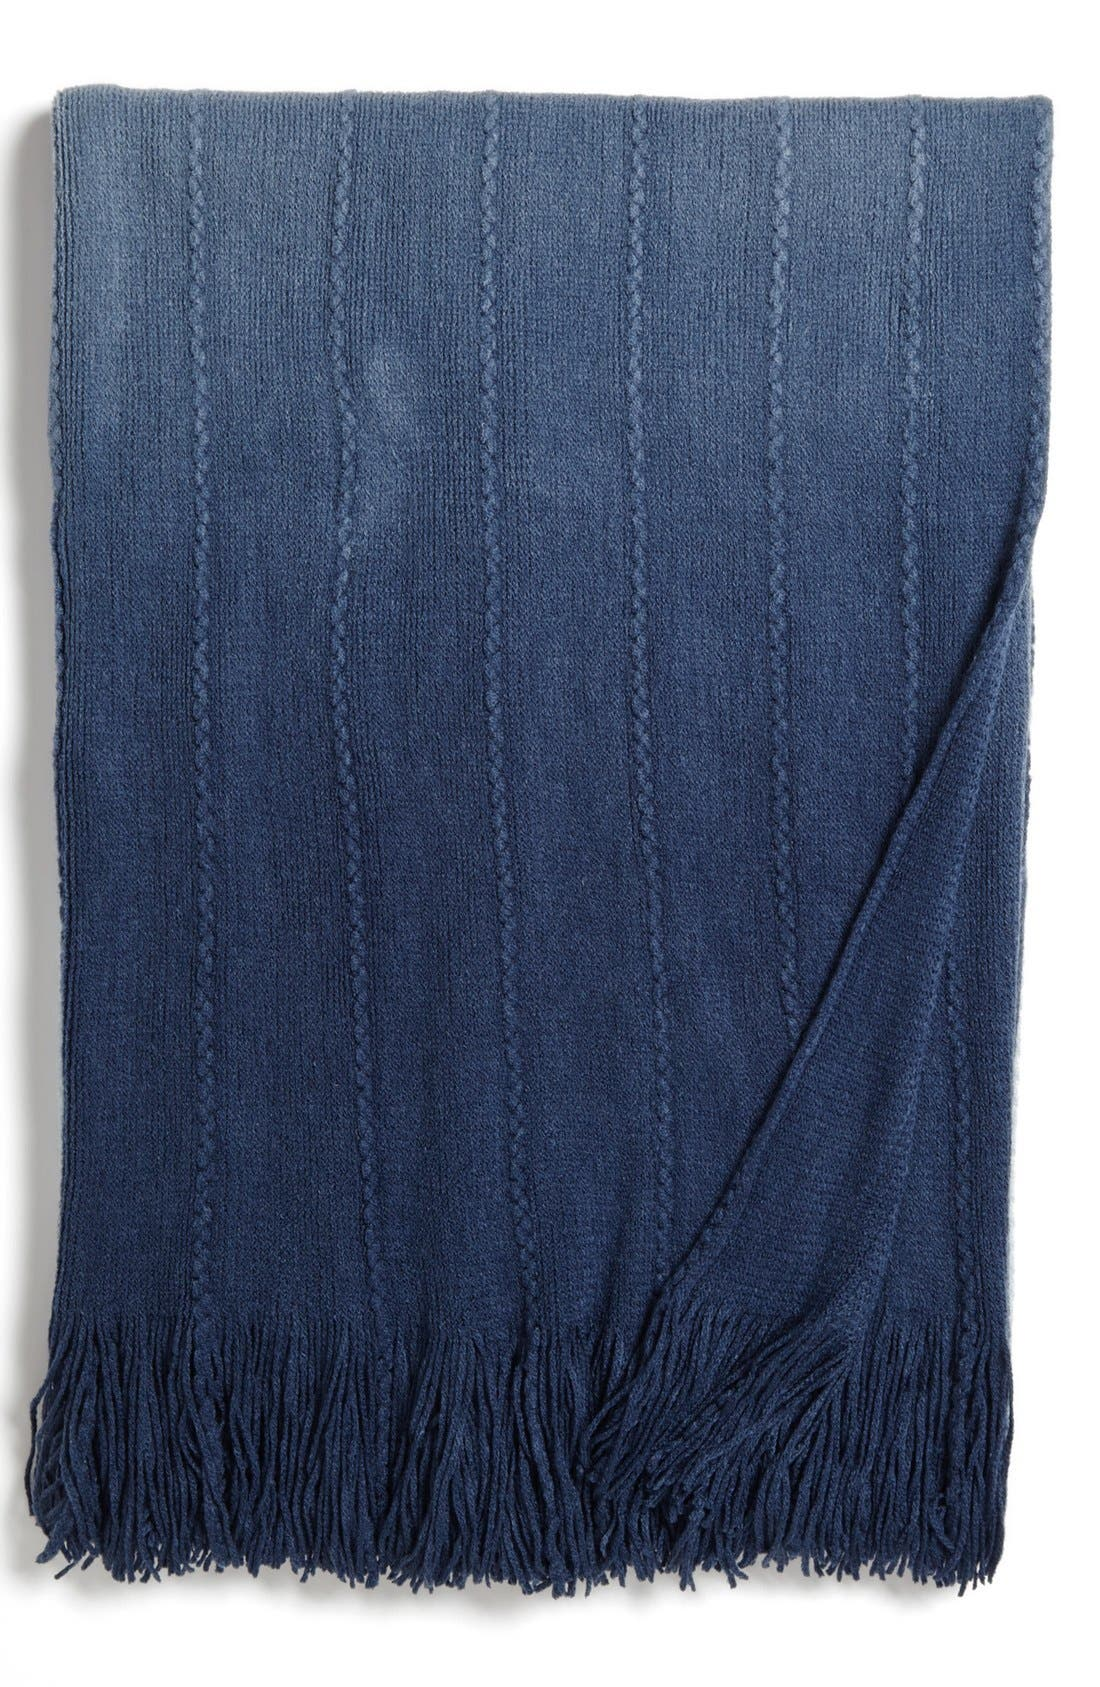 Main Image - Kennebunk Home 'Bainbridge Ombré' Throw